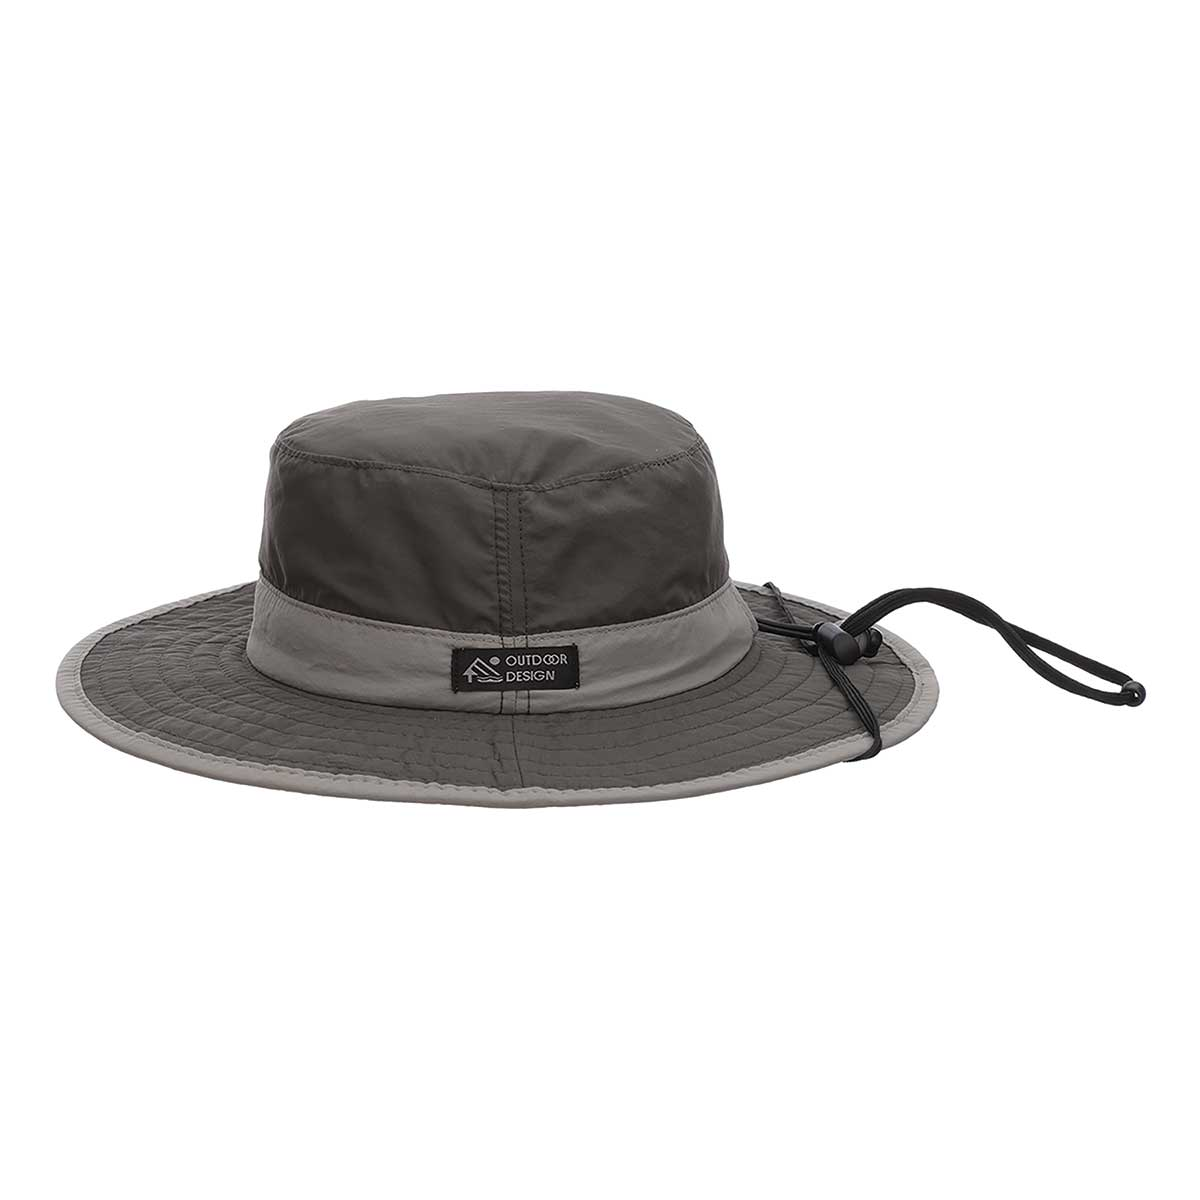 "Supplex® Nylon Boonie Hat with 3 1/4"" Brim"